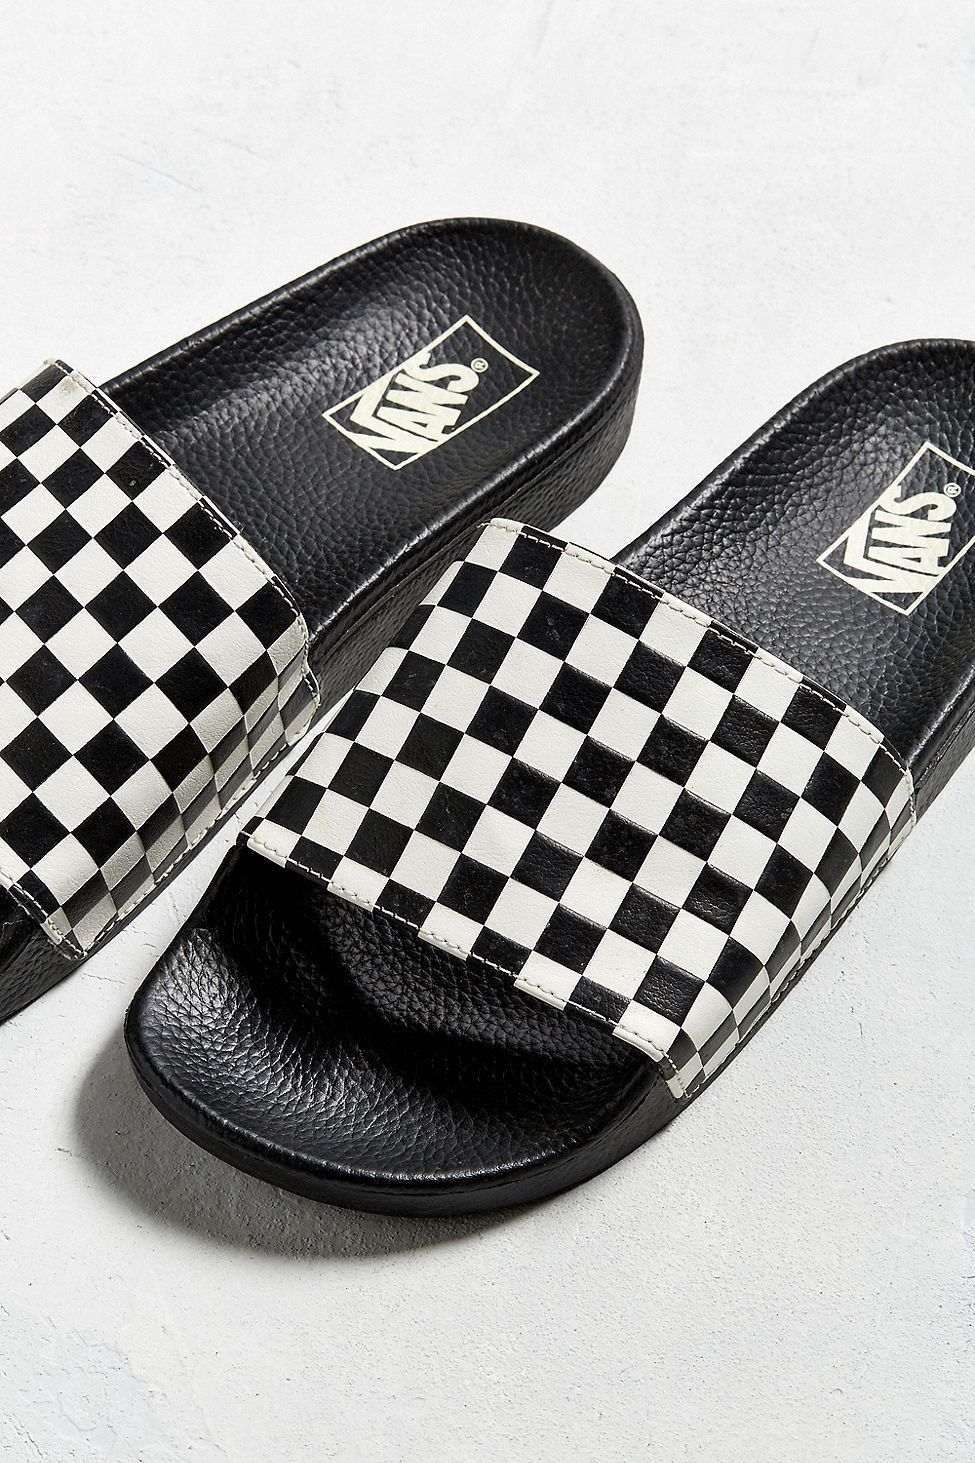 639ad9ba10f Urban Outfitters Vans Slide-On Checkerboard Sandal - Black + White ...